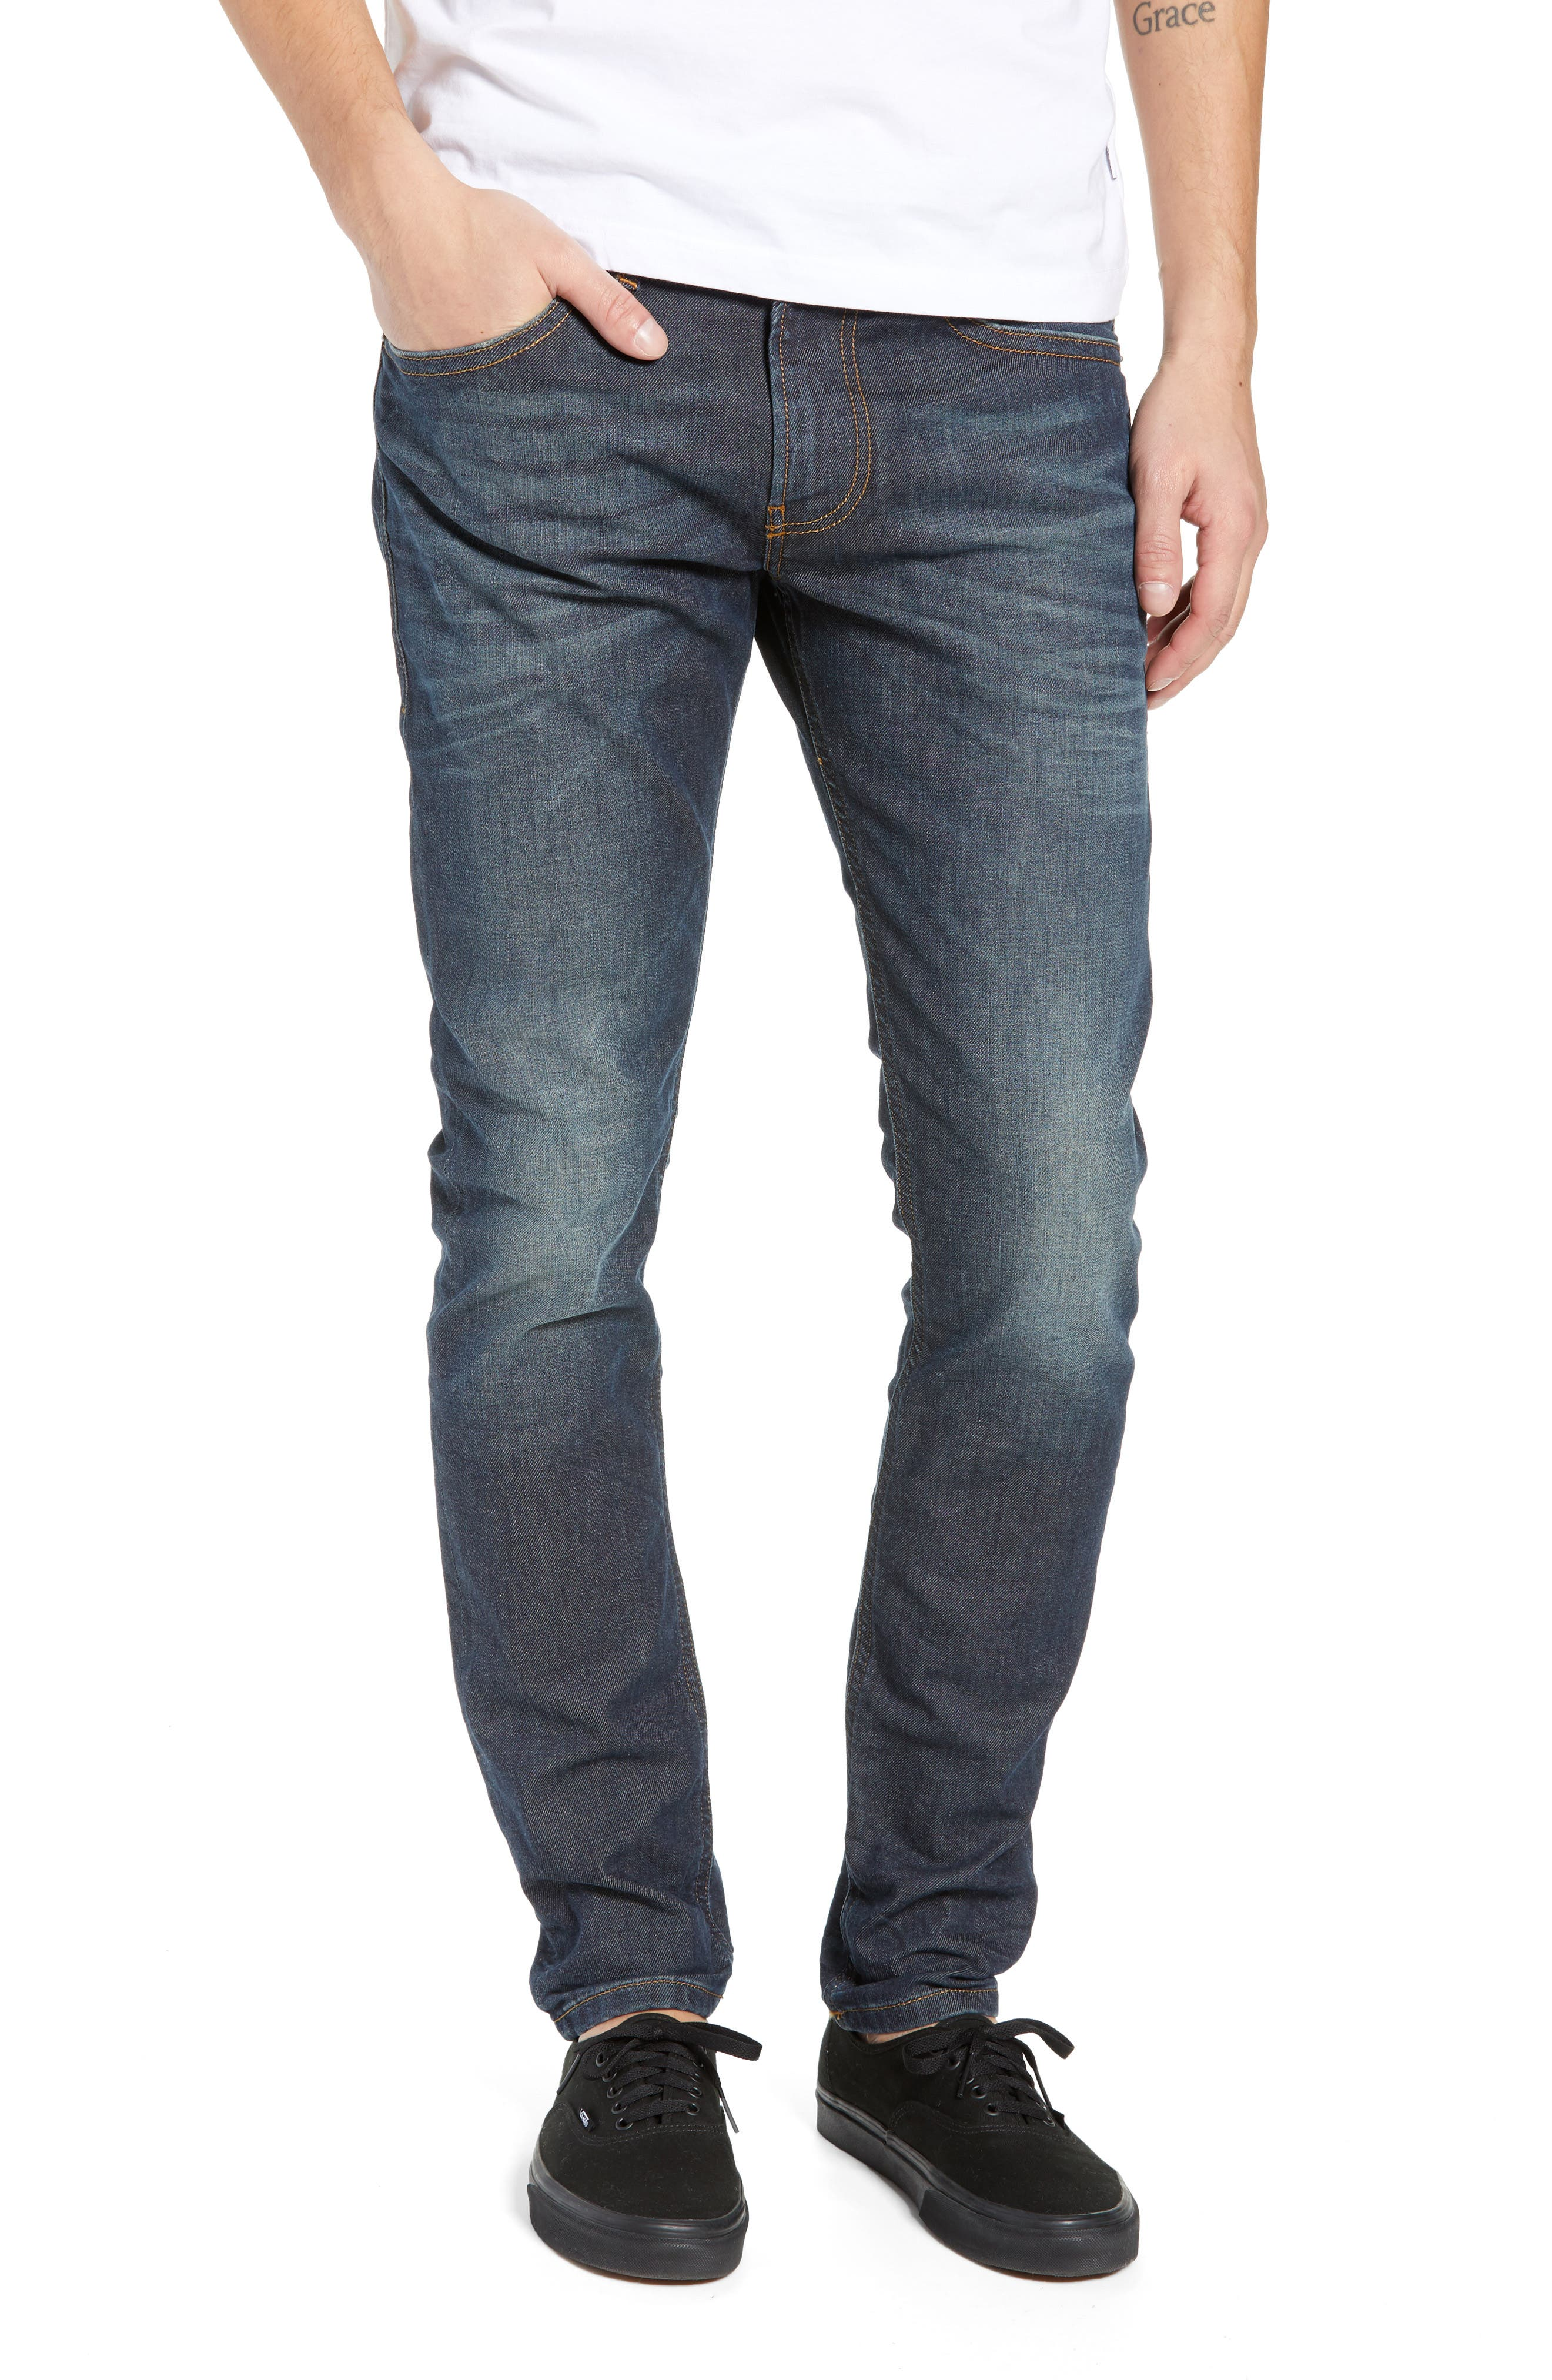 Thommer Slim Fit Jeans,                             Main thumbnail 1, color,                             084ZU